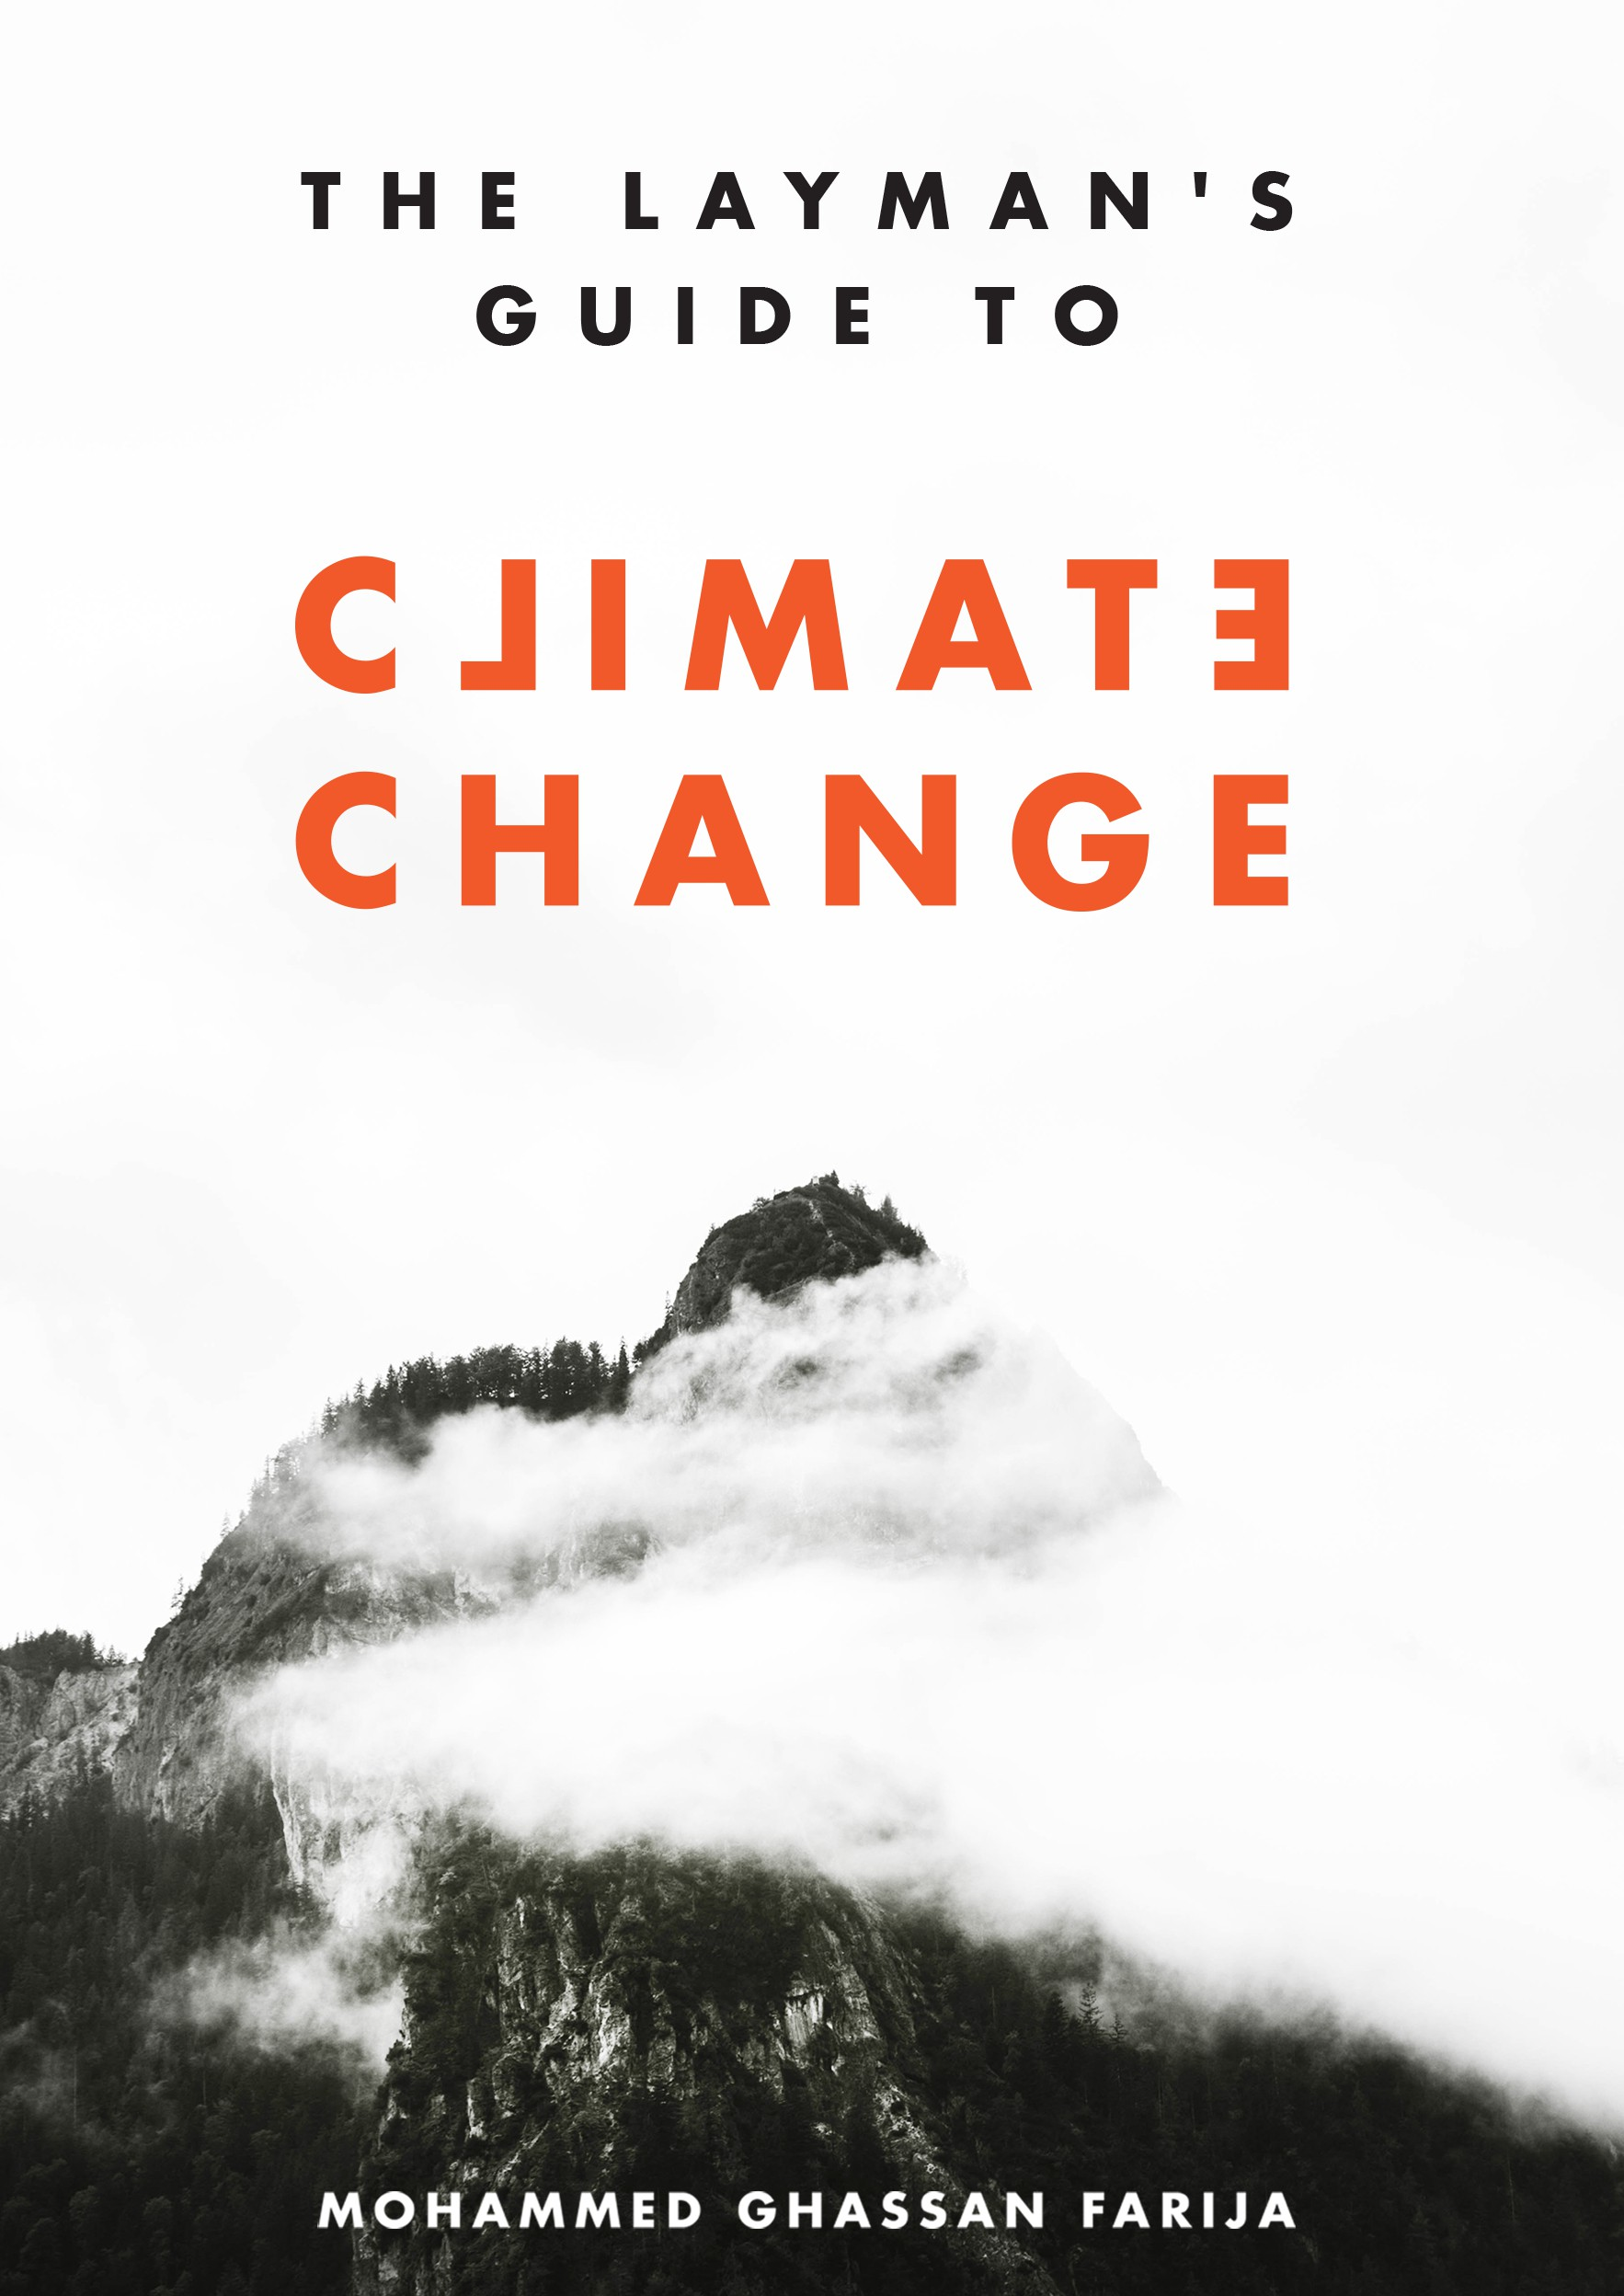 Design the front cover for a book about climate change